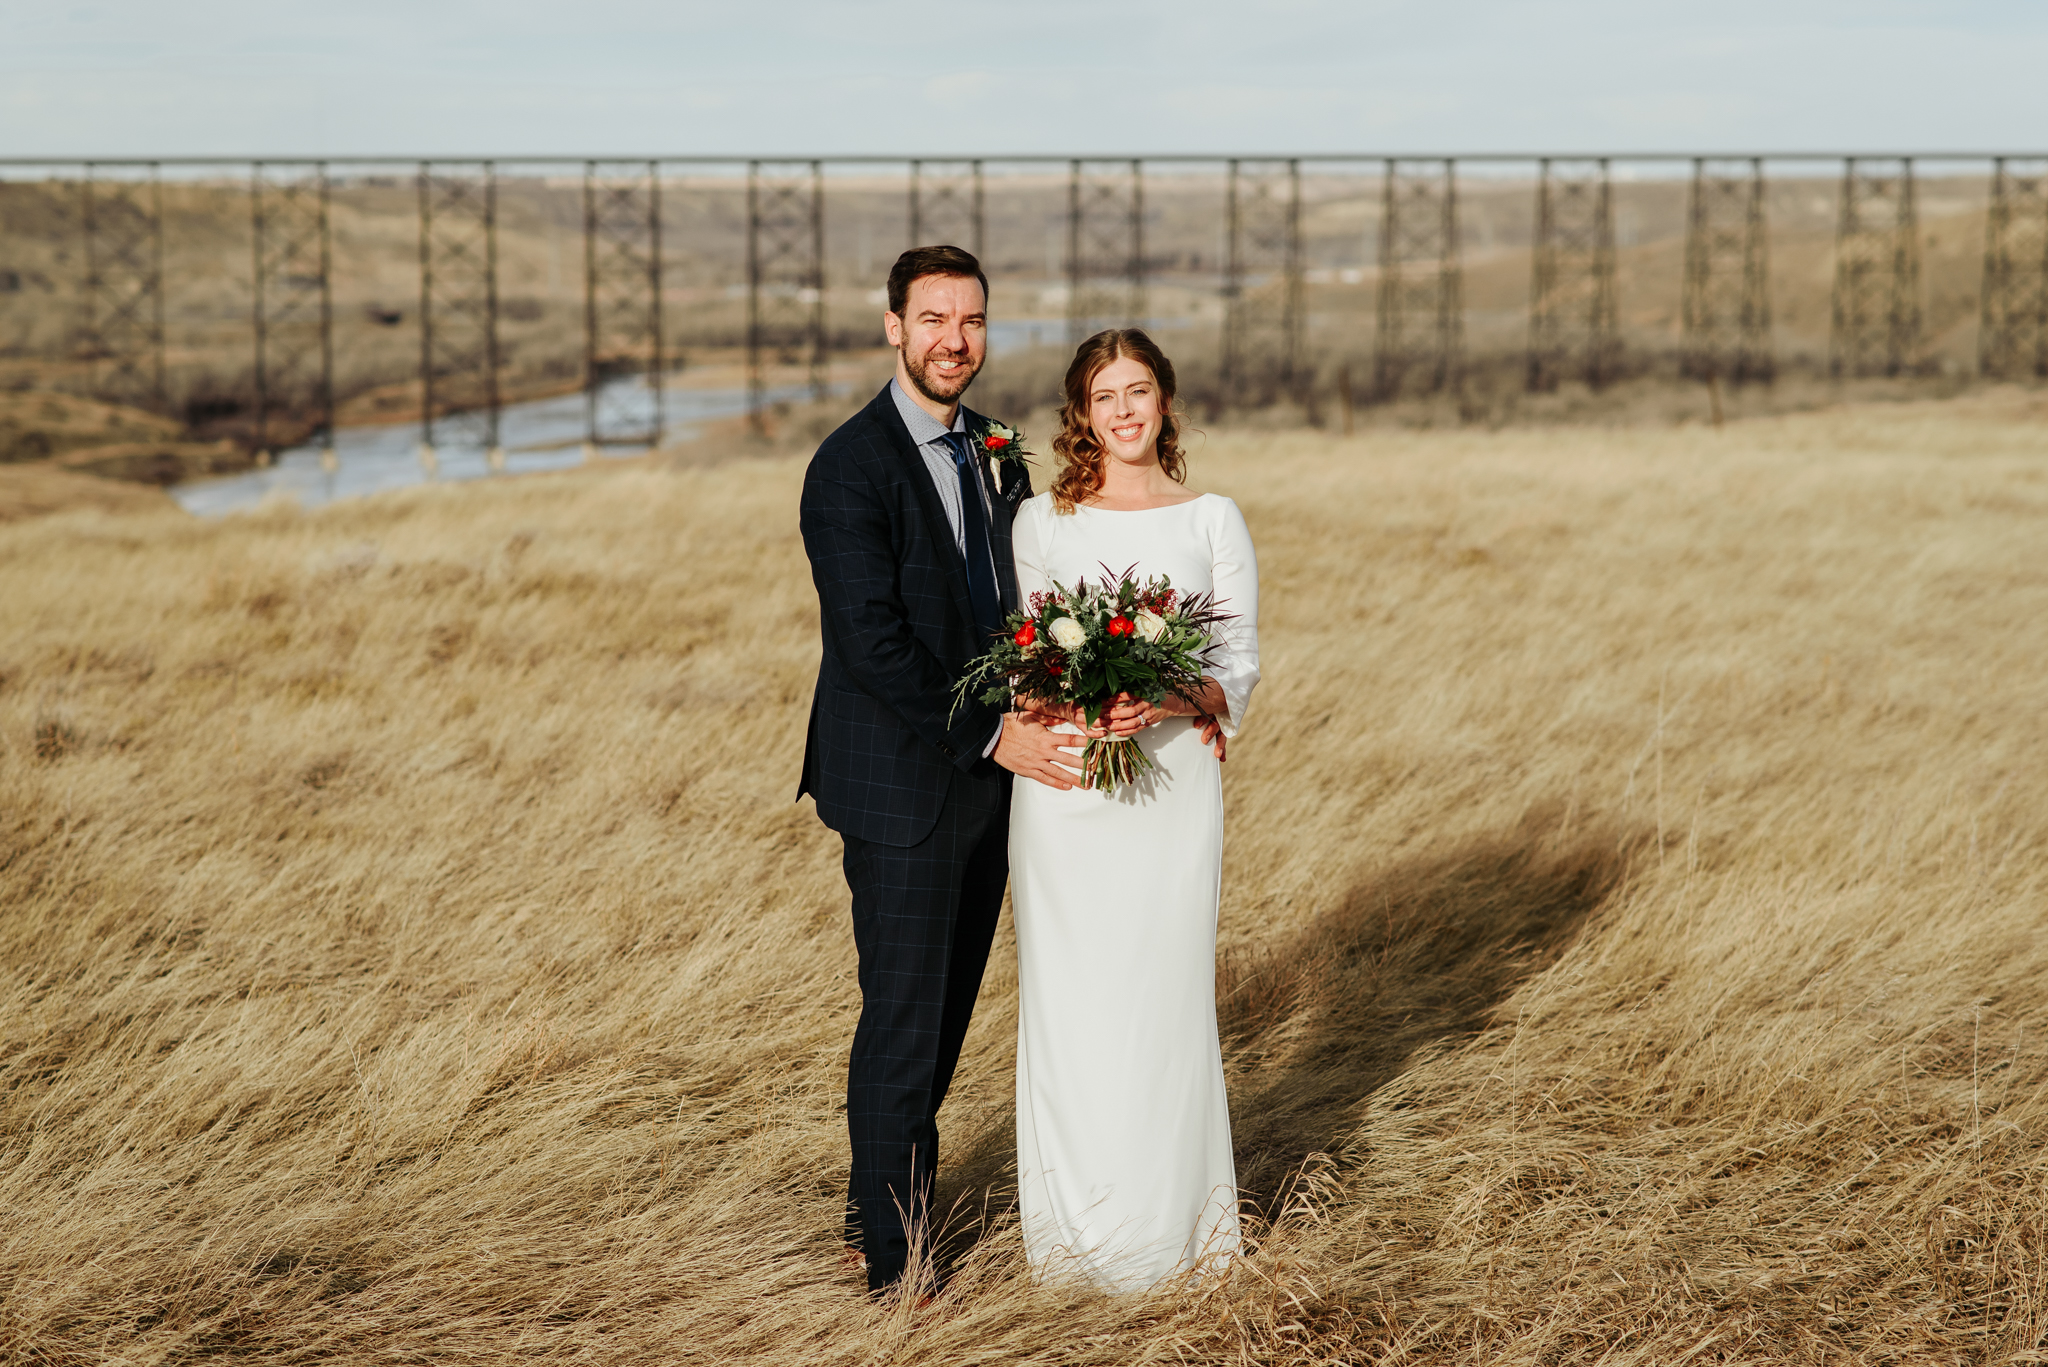 lethbridge-wedding-photographer-love-and-be-loved-photography-kris-amy-paradise-canyon-image-picture-photo-12.jpg